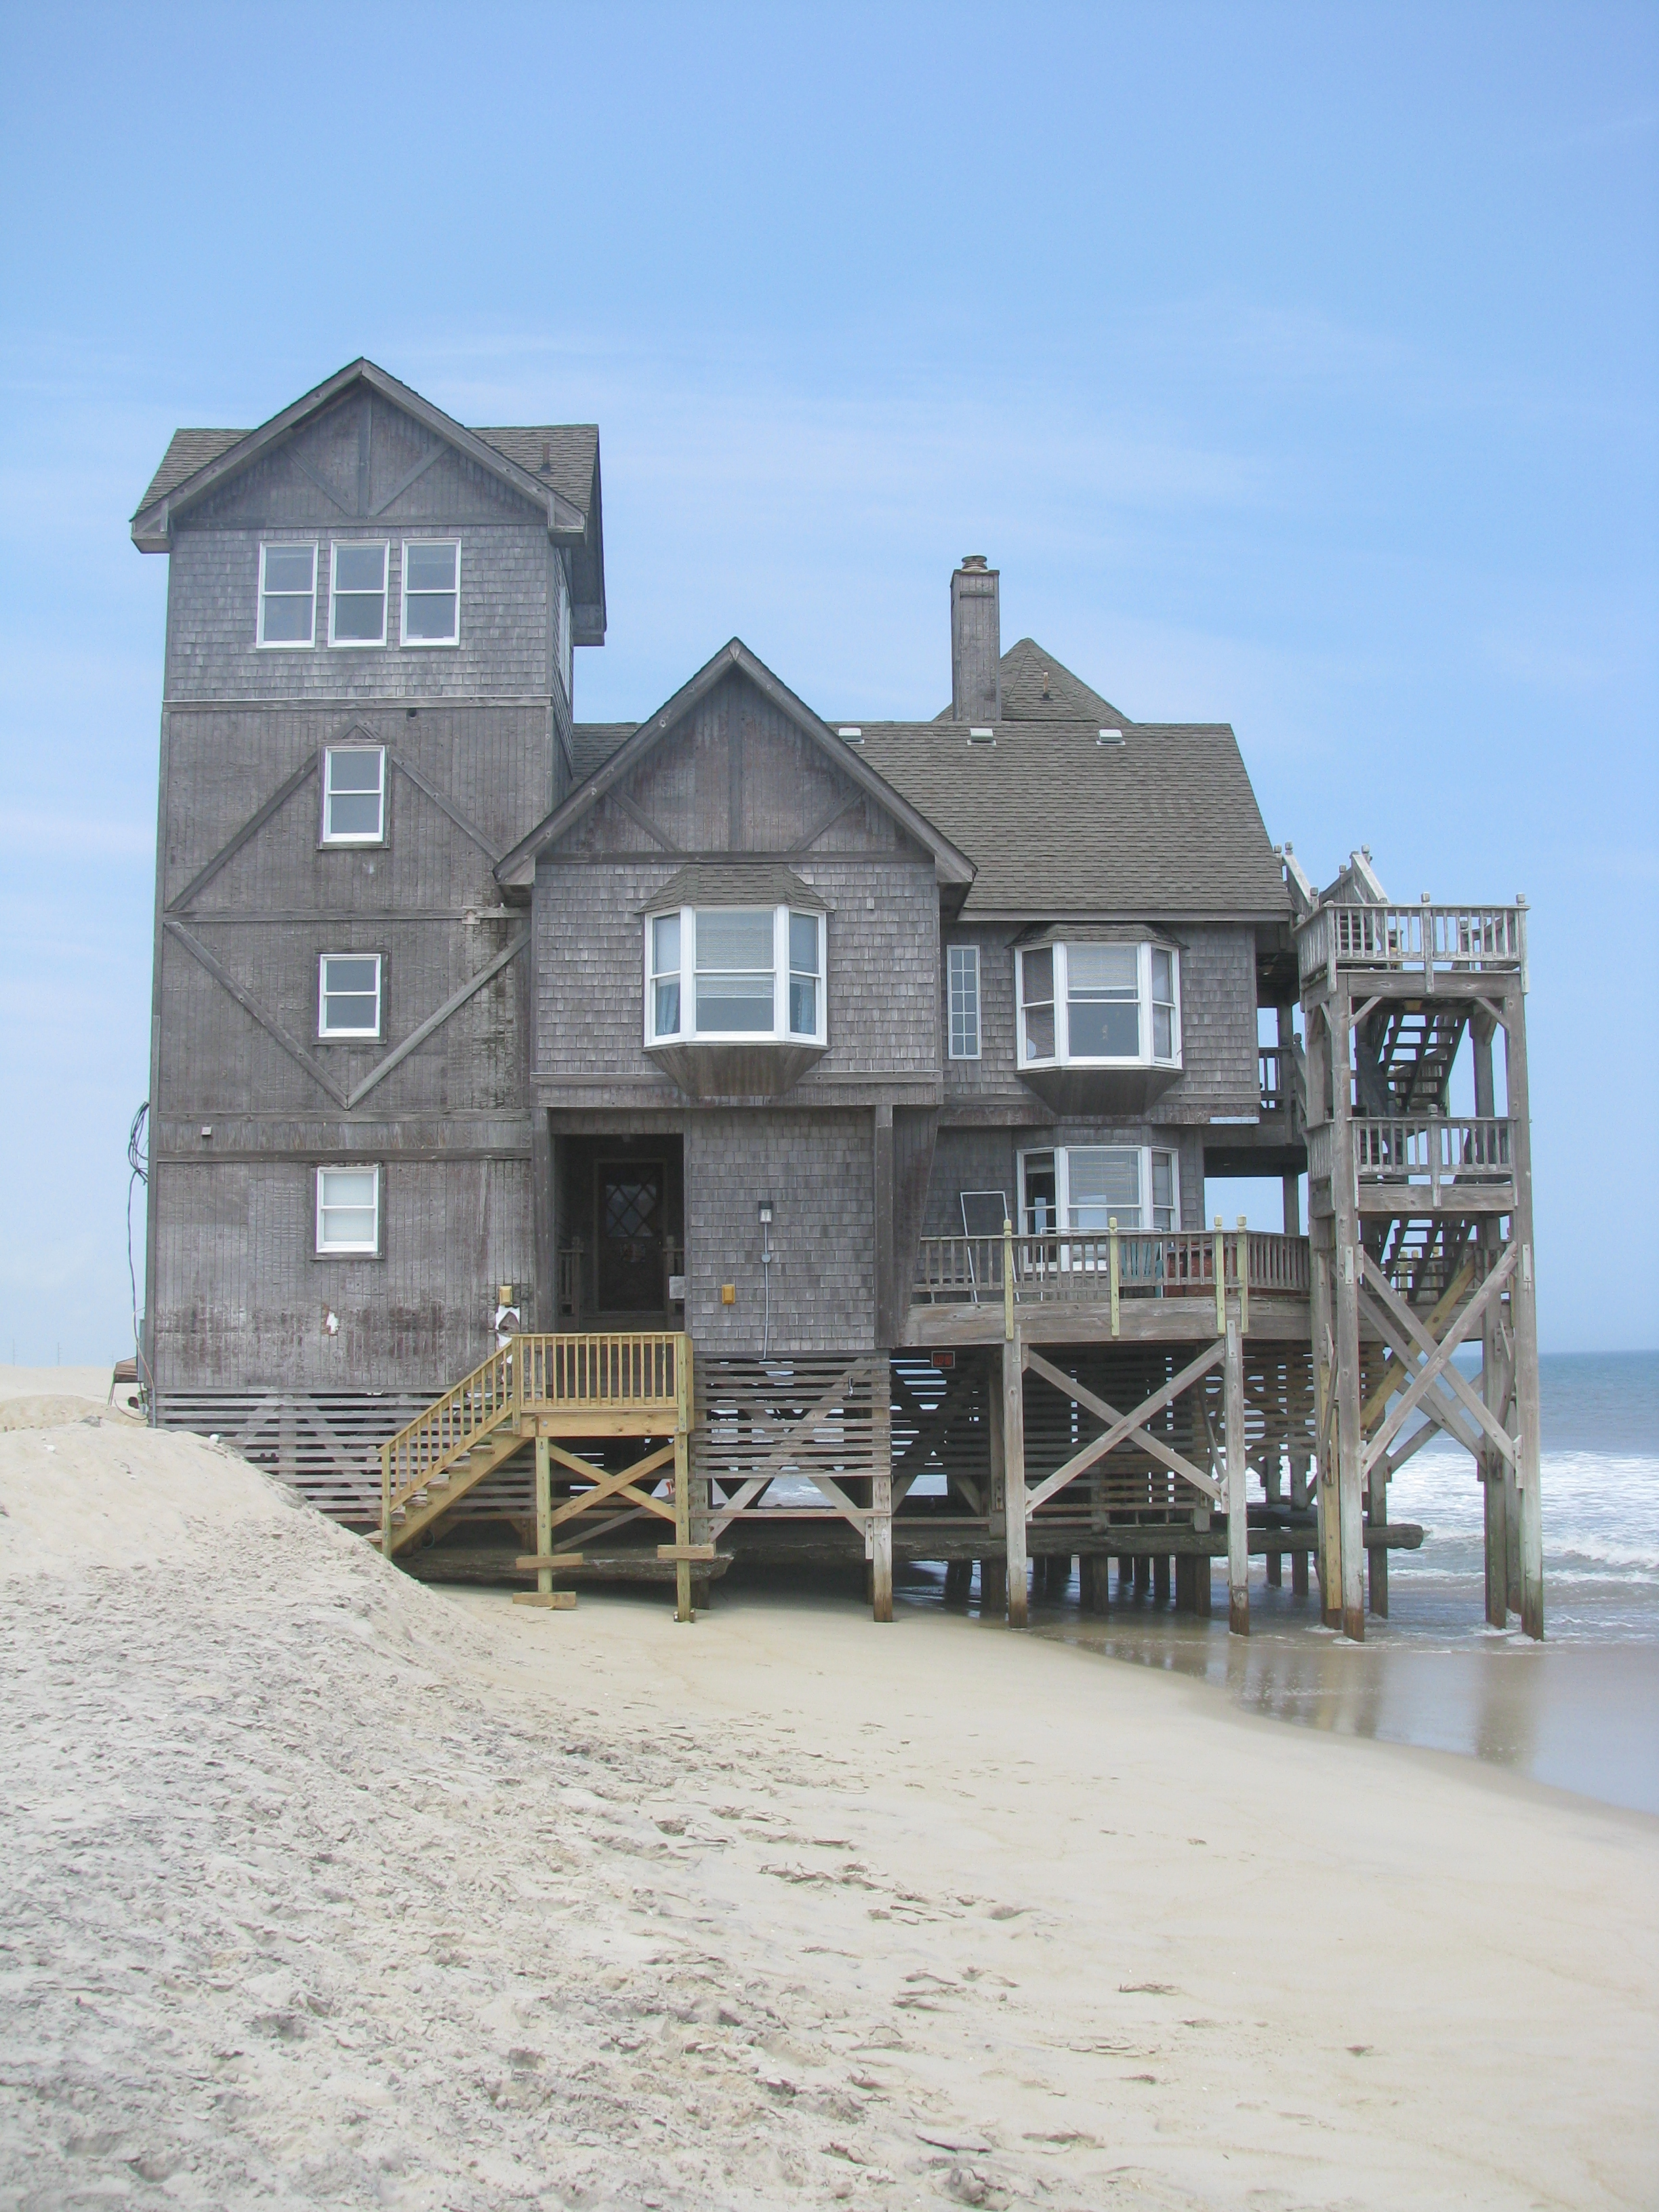 8 Bedroom Beach House North Carolina